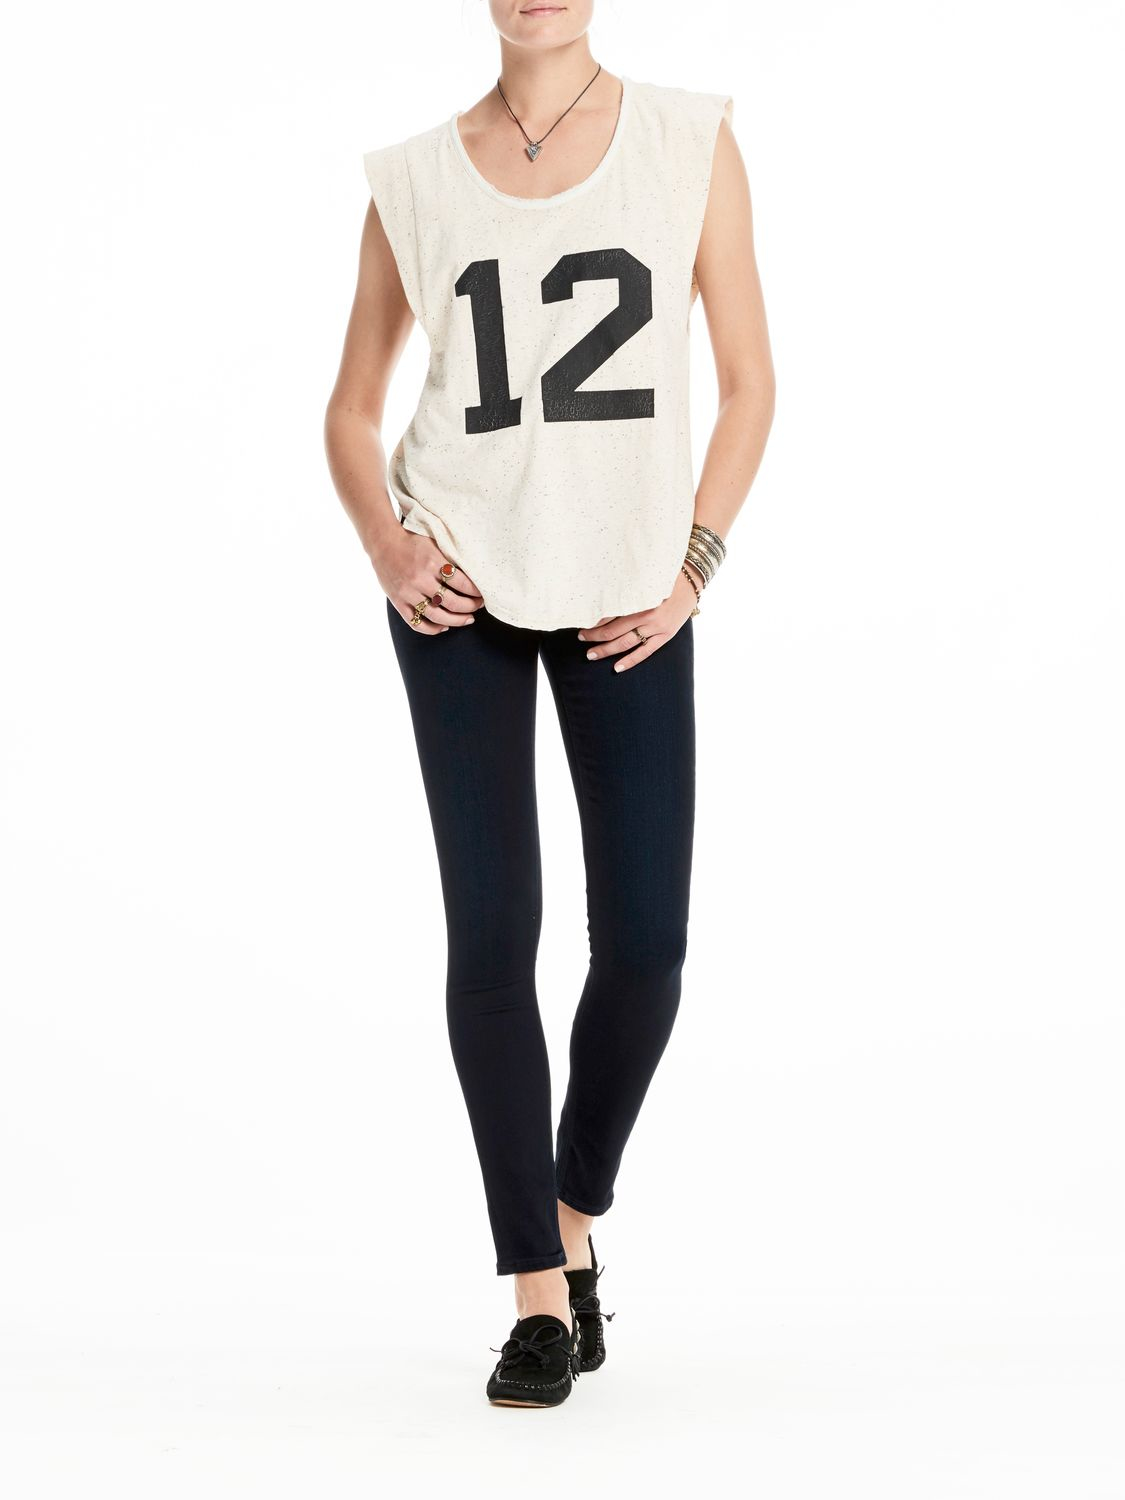 oszlss Scotch & soda La Parisienne - Black Mamba Low Rise Skinny Fit in